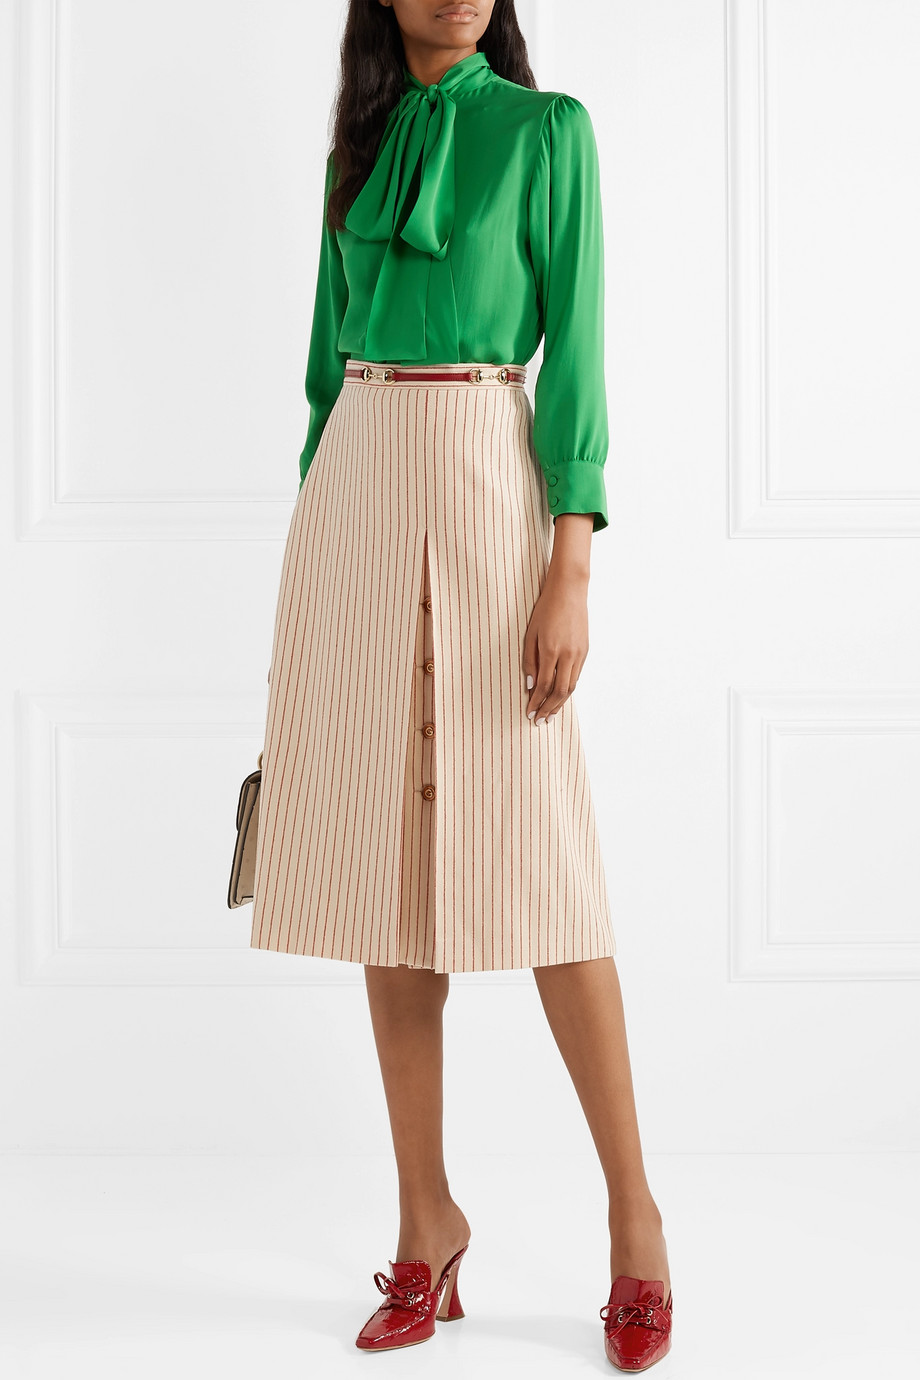 Gucci Leather-trimmed paneled pinstriped wool midi skirt